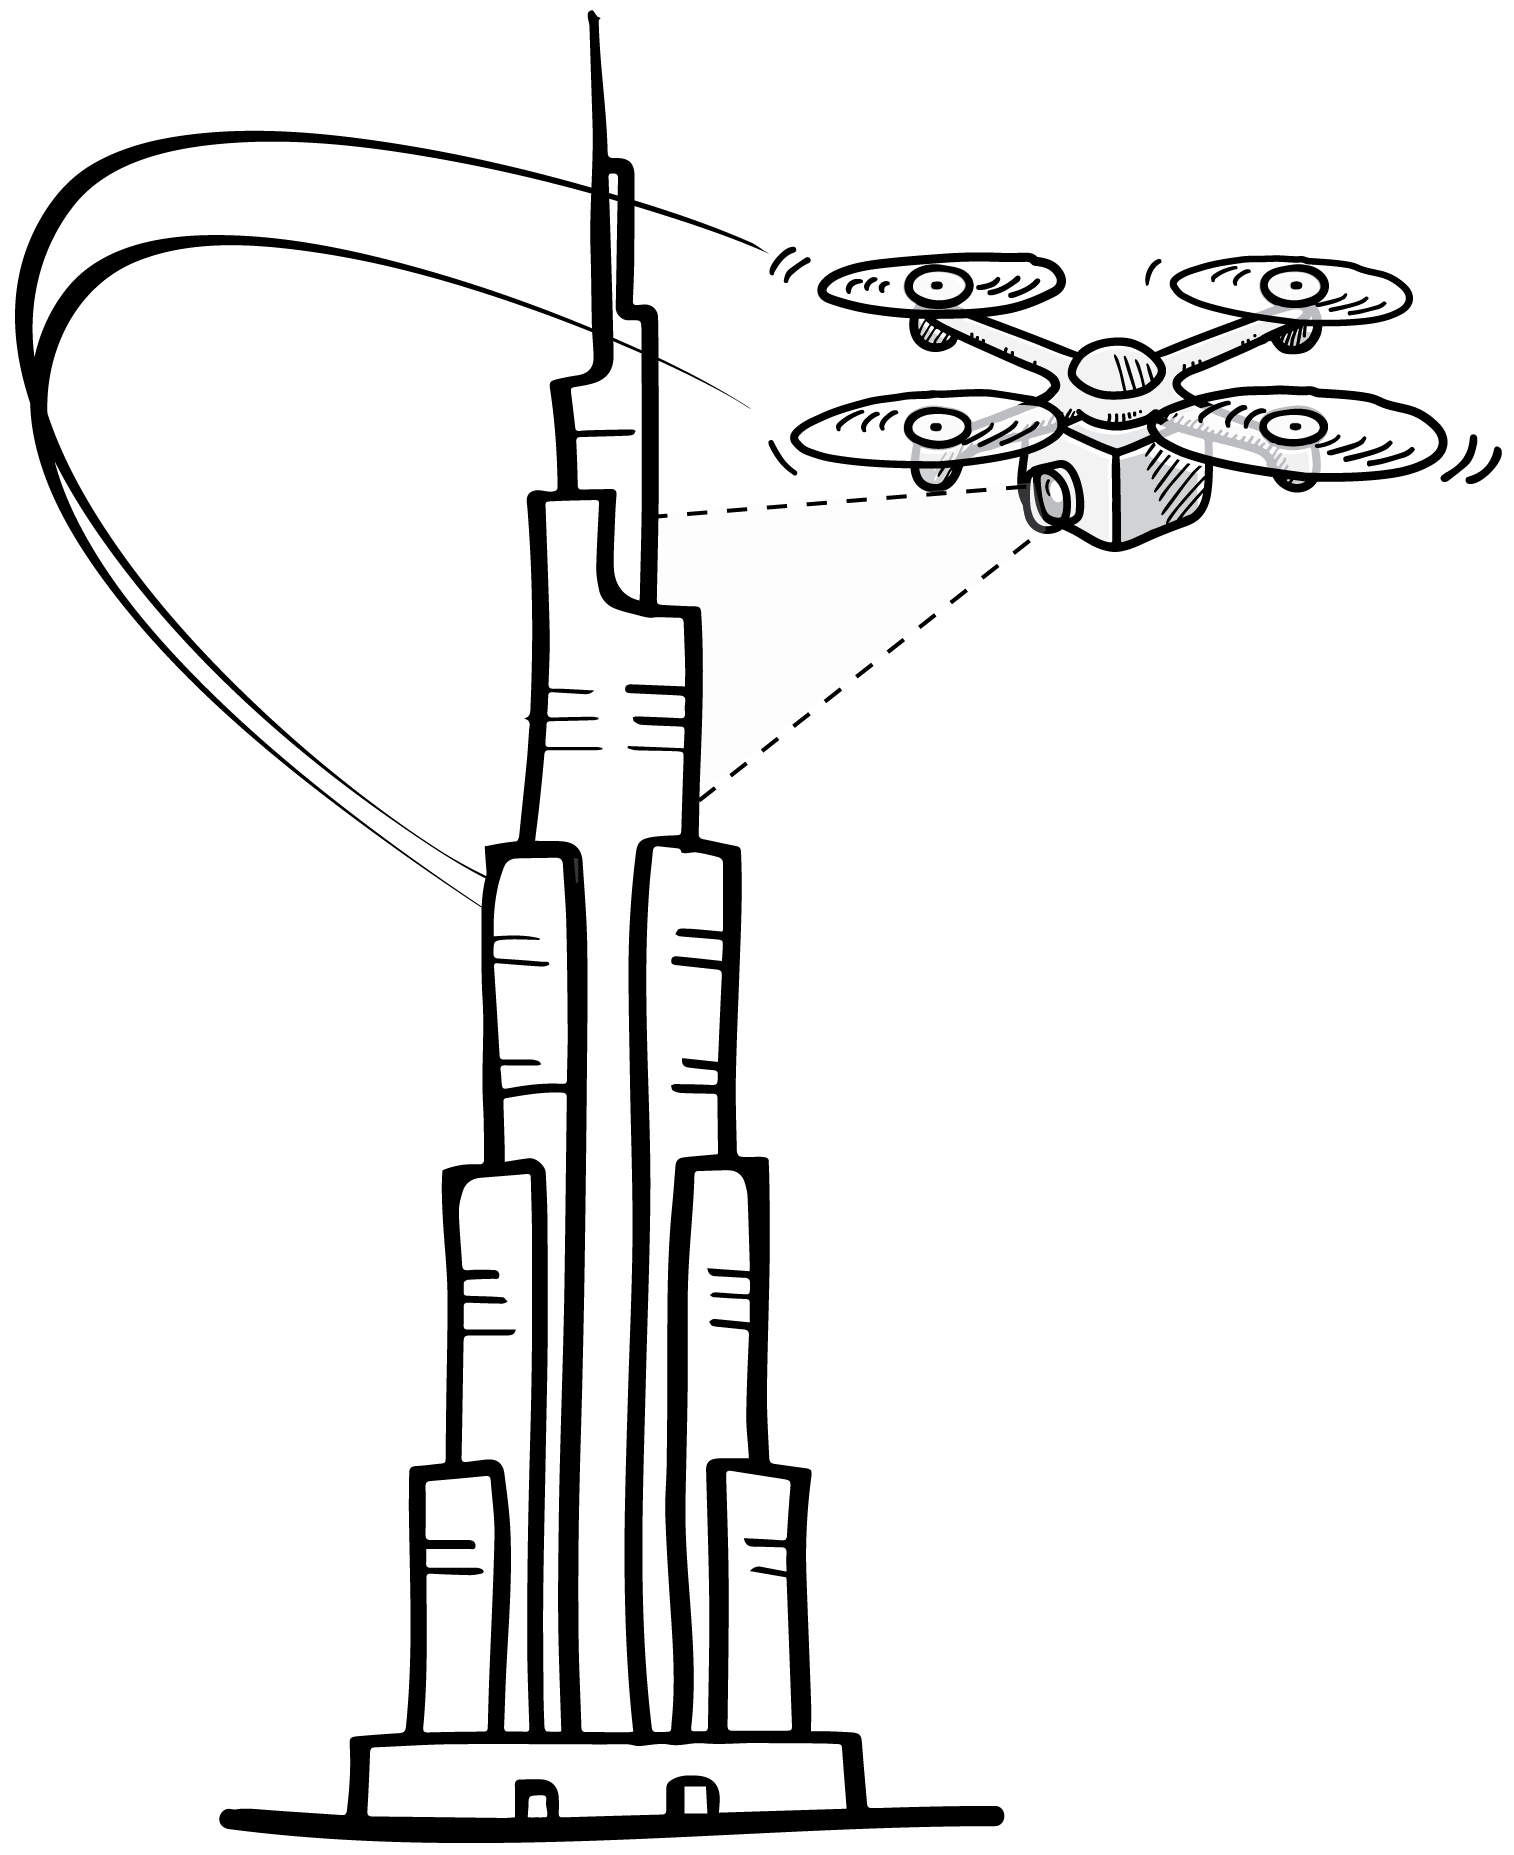 Aerial 3D scanning. Drone flying around Burj Khalifa building tower in Dubai.